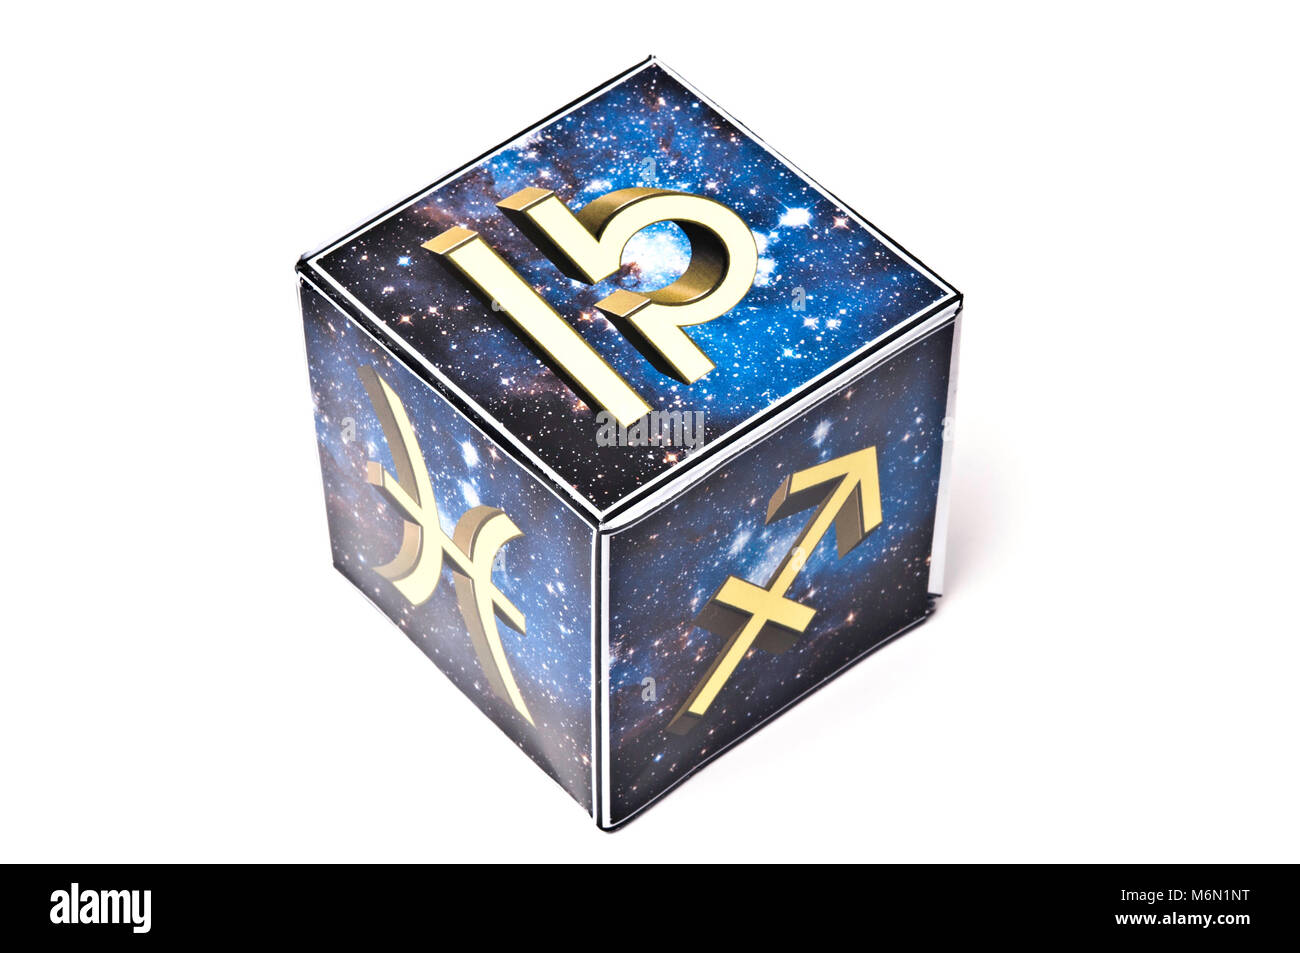 astrology cube with signs of the zodiac - Stock Image